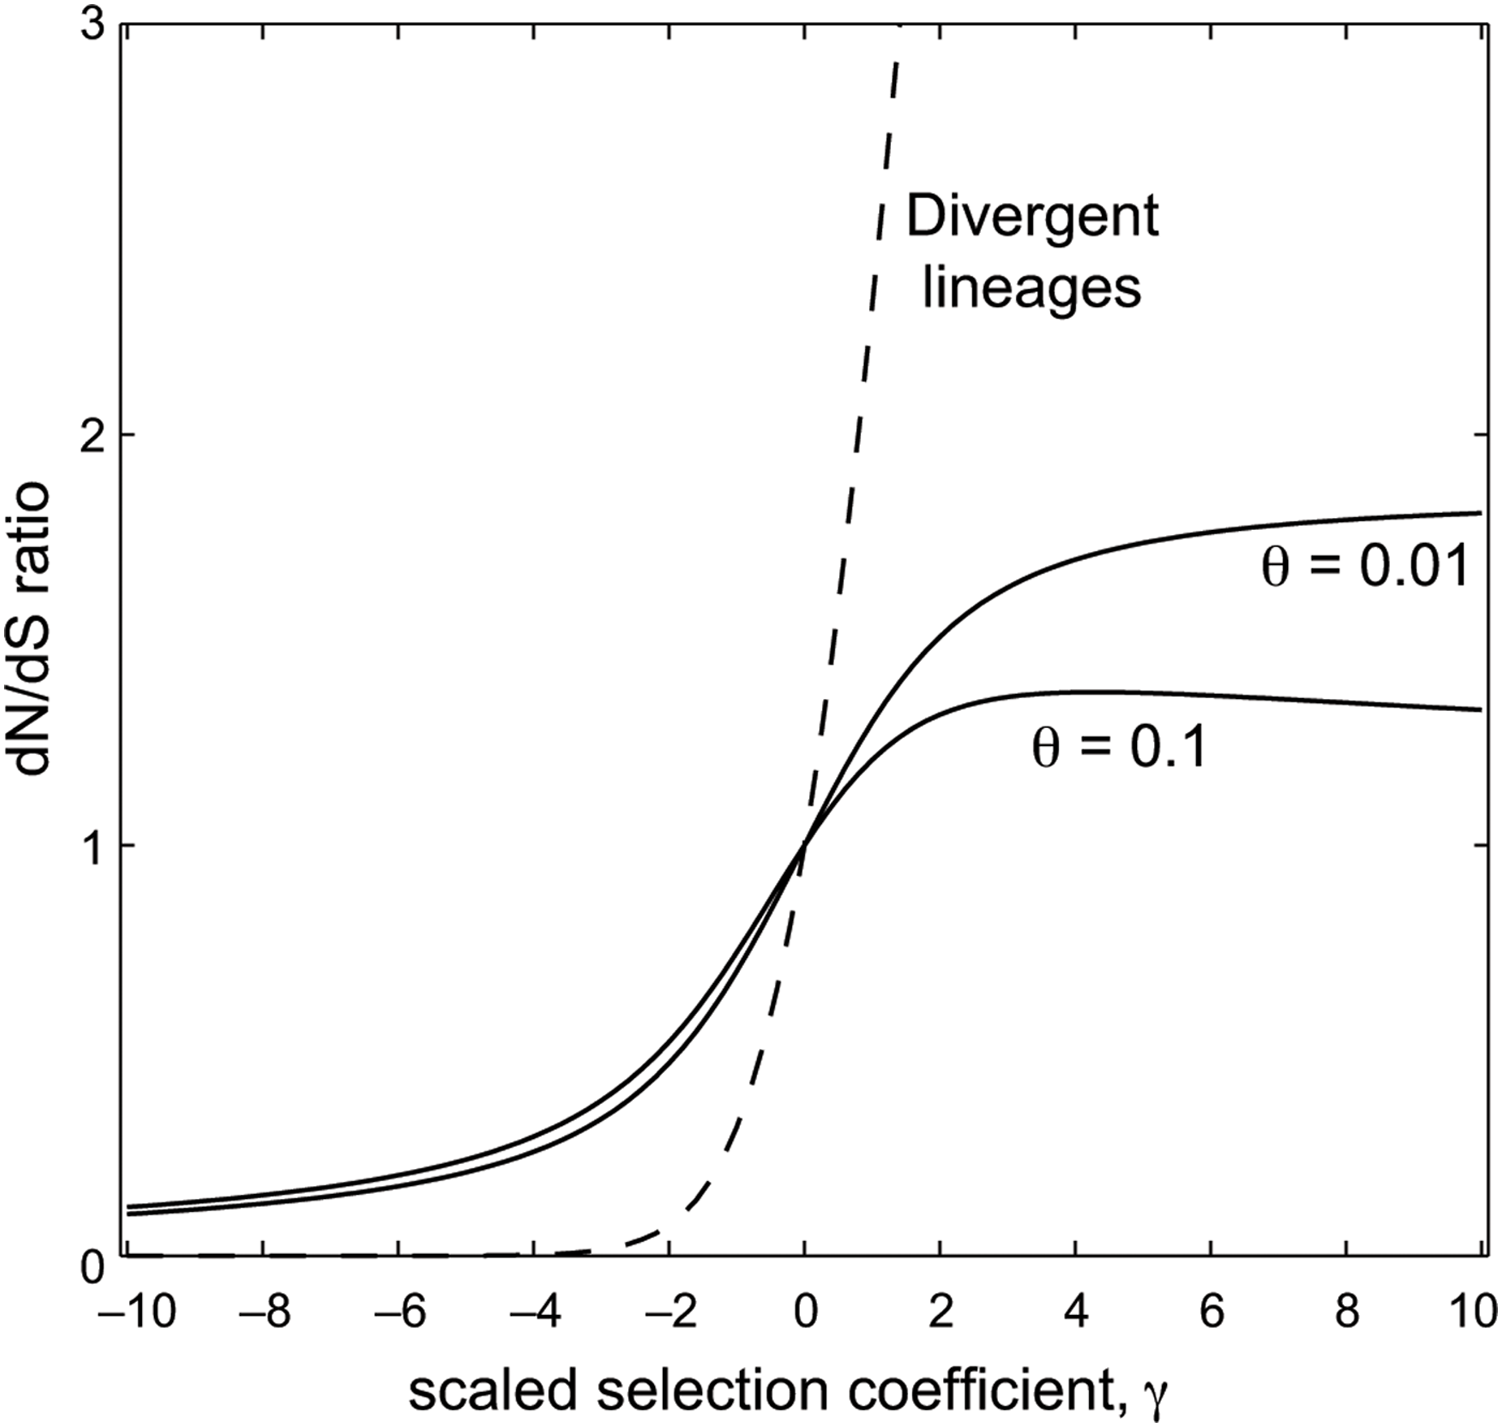 The relationship between the scaled selection coefficient, <i>γ</i>, and the expected dN/dS ratio.